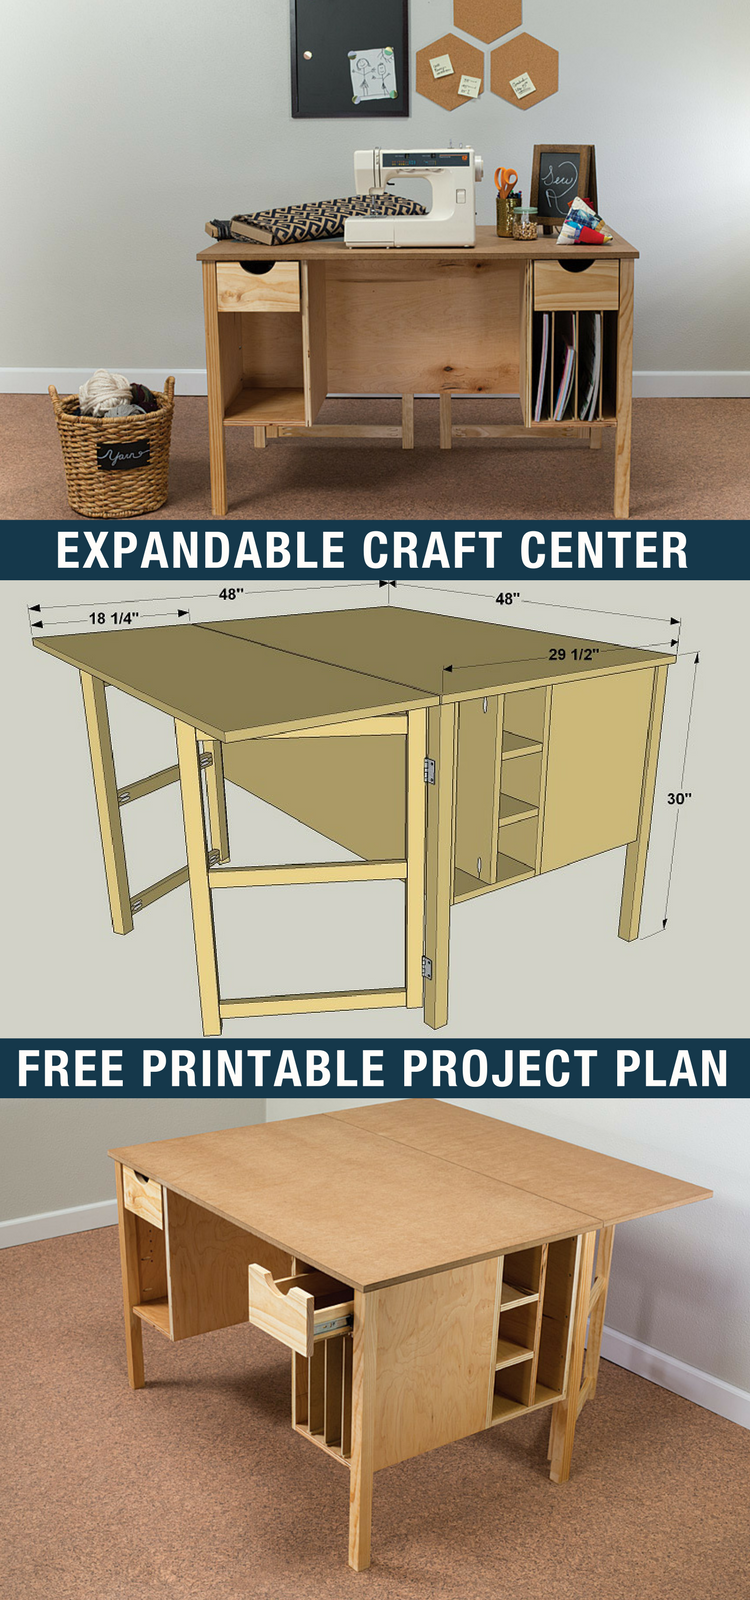 Diy Expandable Craft Center Free Printable Project Plans On Buildsomething Com Whether You Diy Furniture Plans Woodworking Plans Free Woodworking Plans Diy